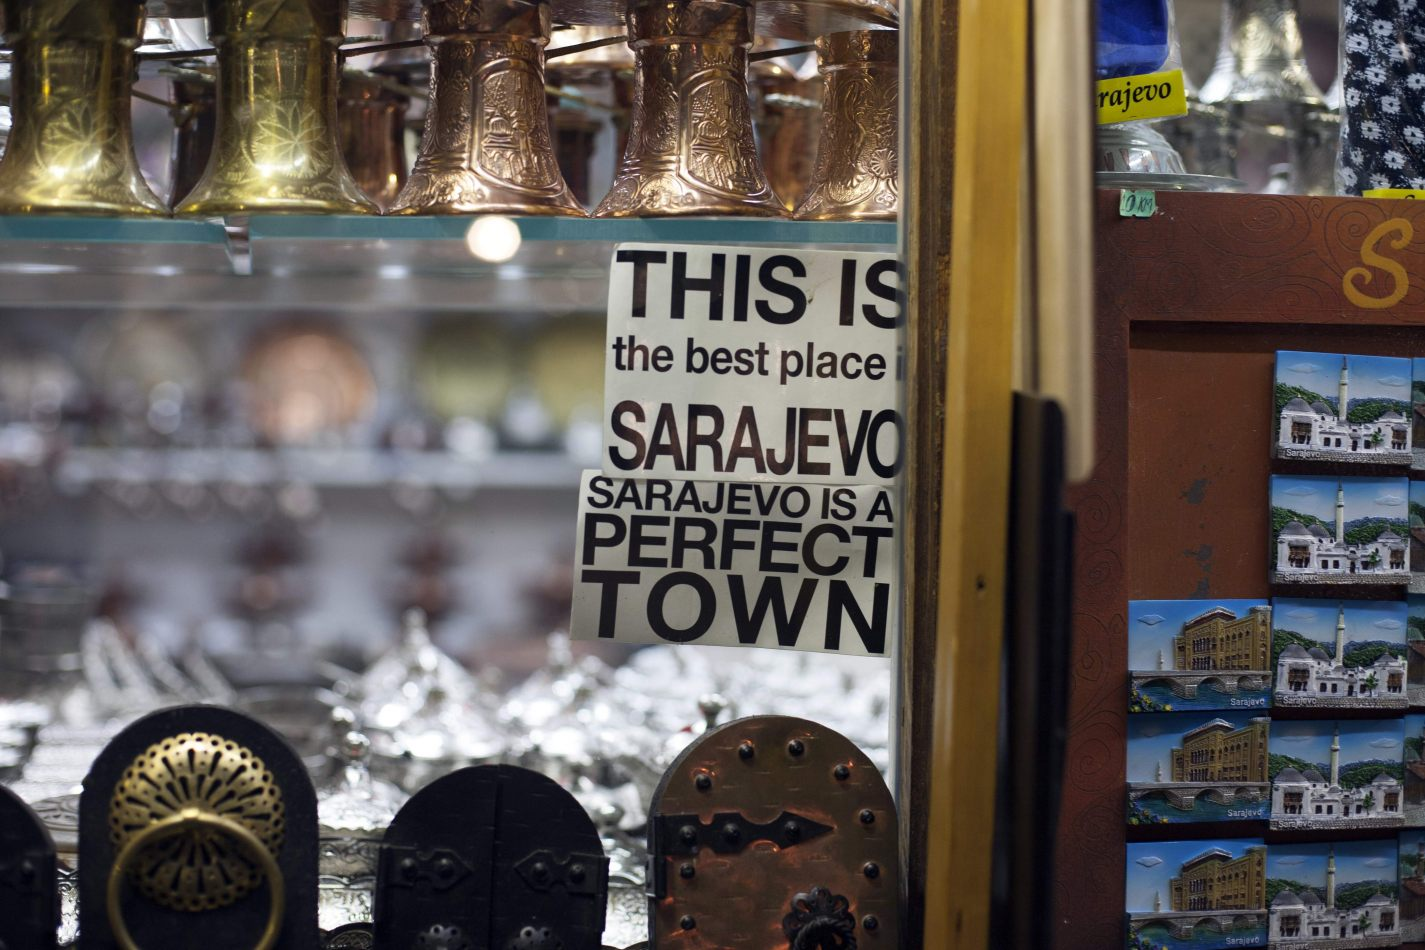 Anthony Ellis Photography: Empty Shells - This is the Best Place is Sarajevo